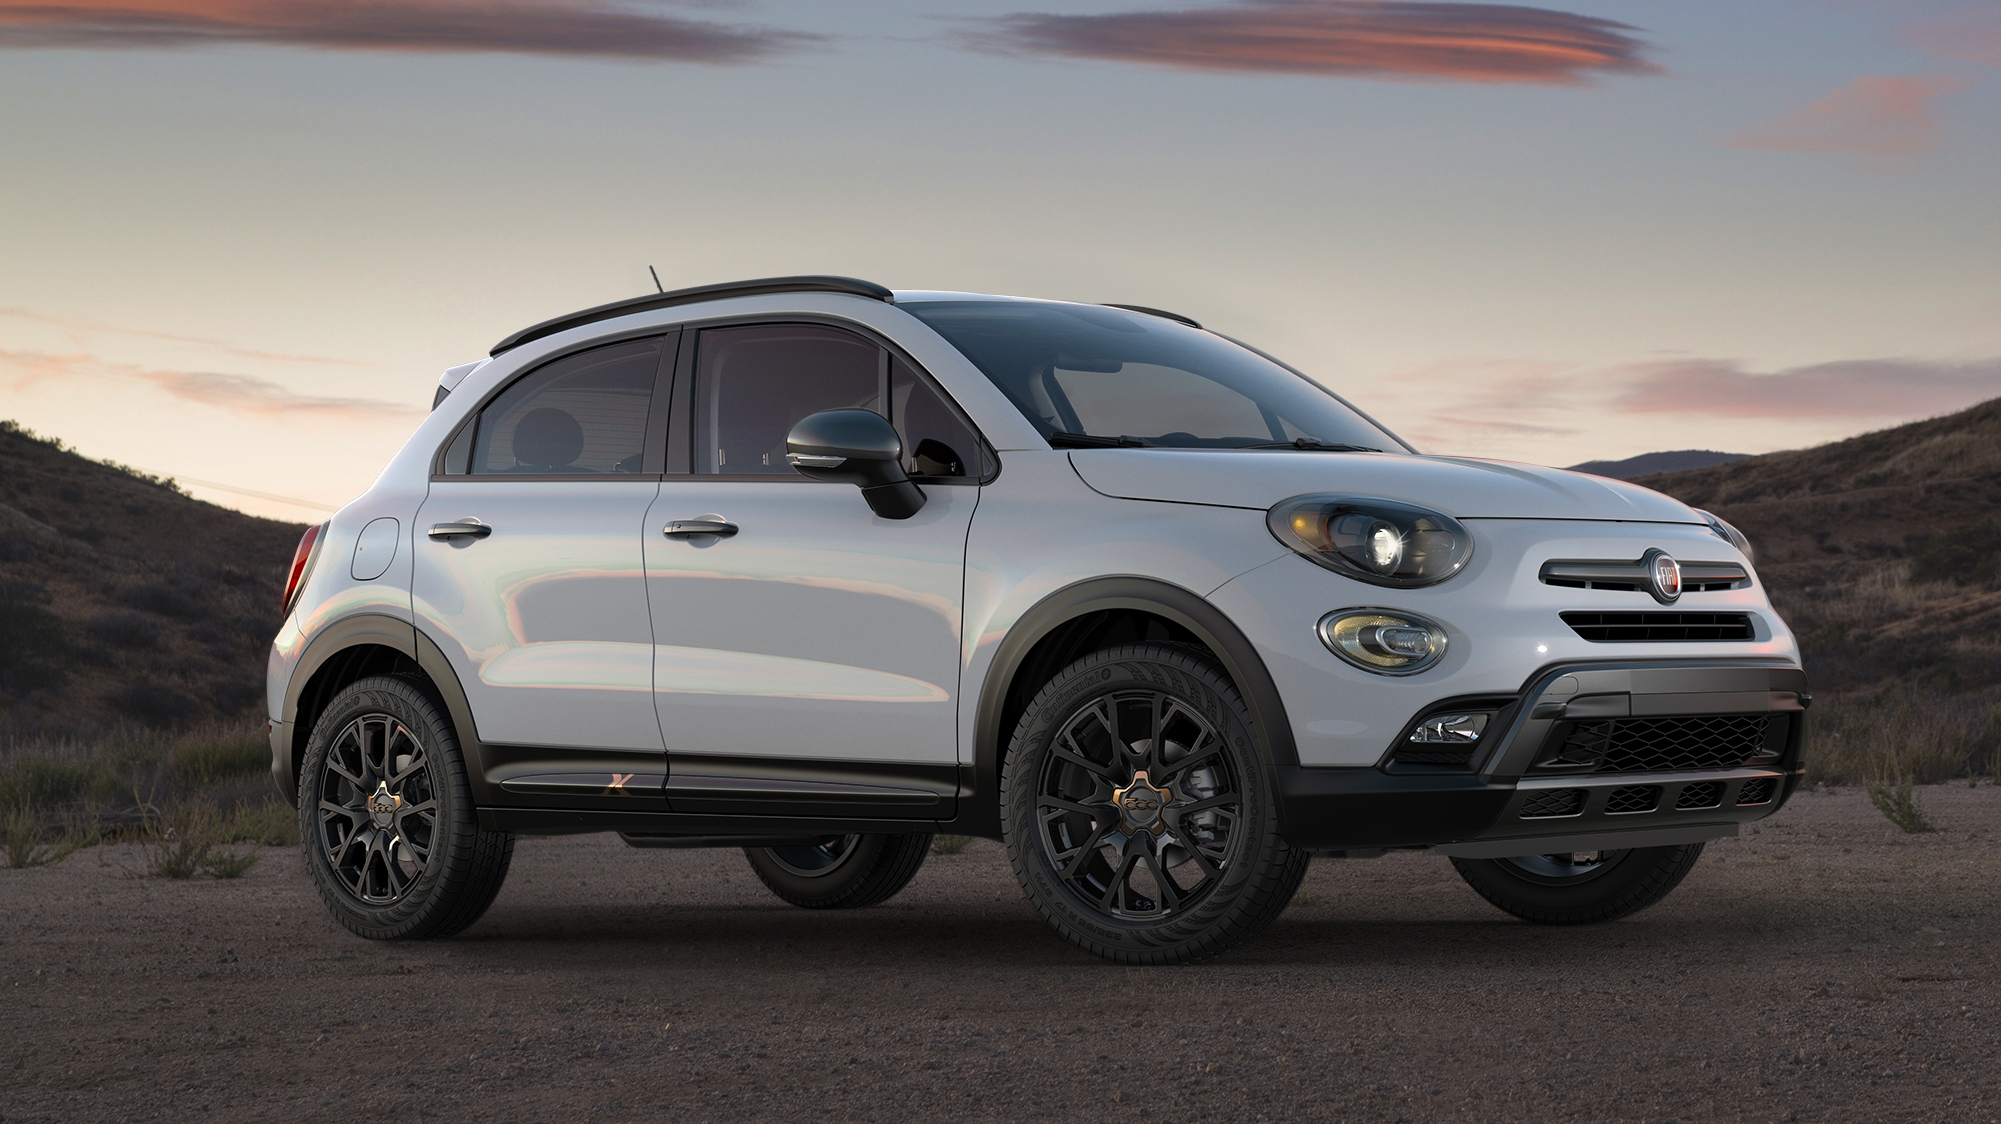 drive of turbo car test small price review fiat expert